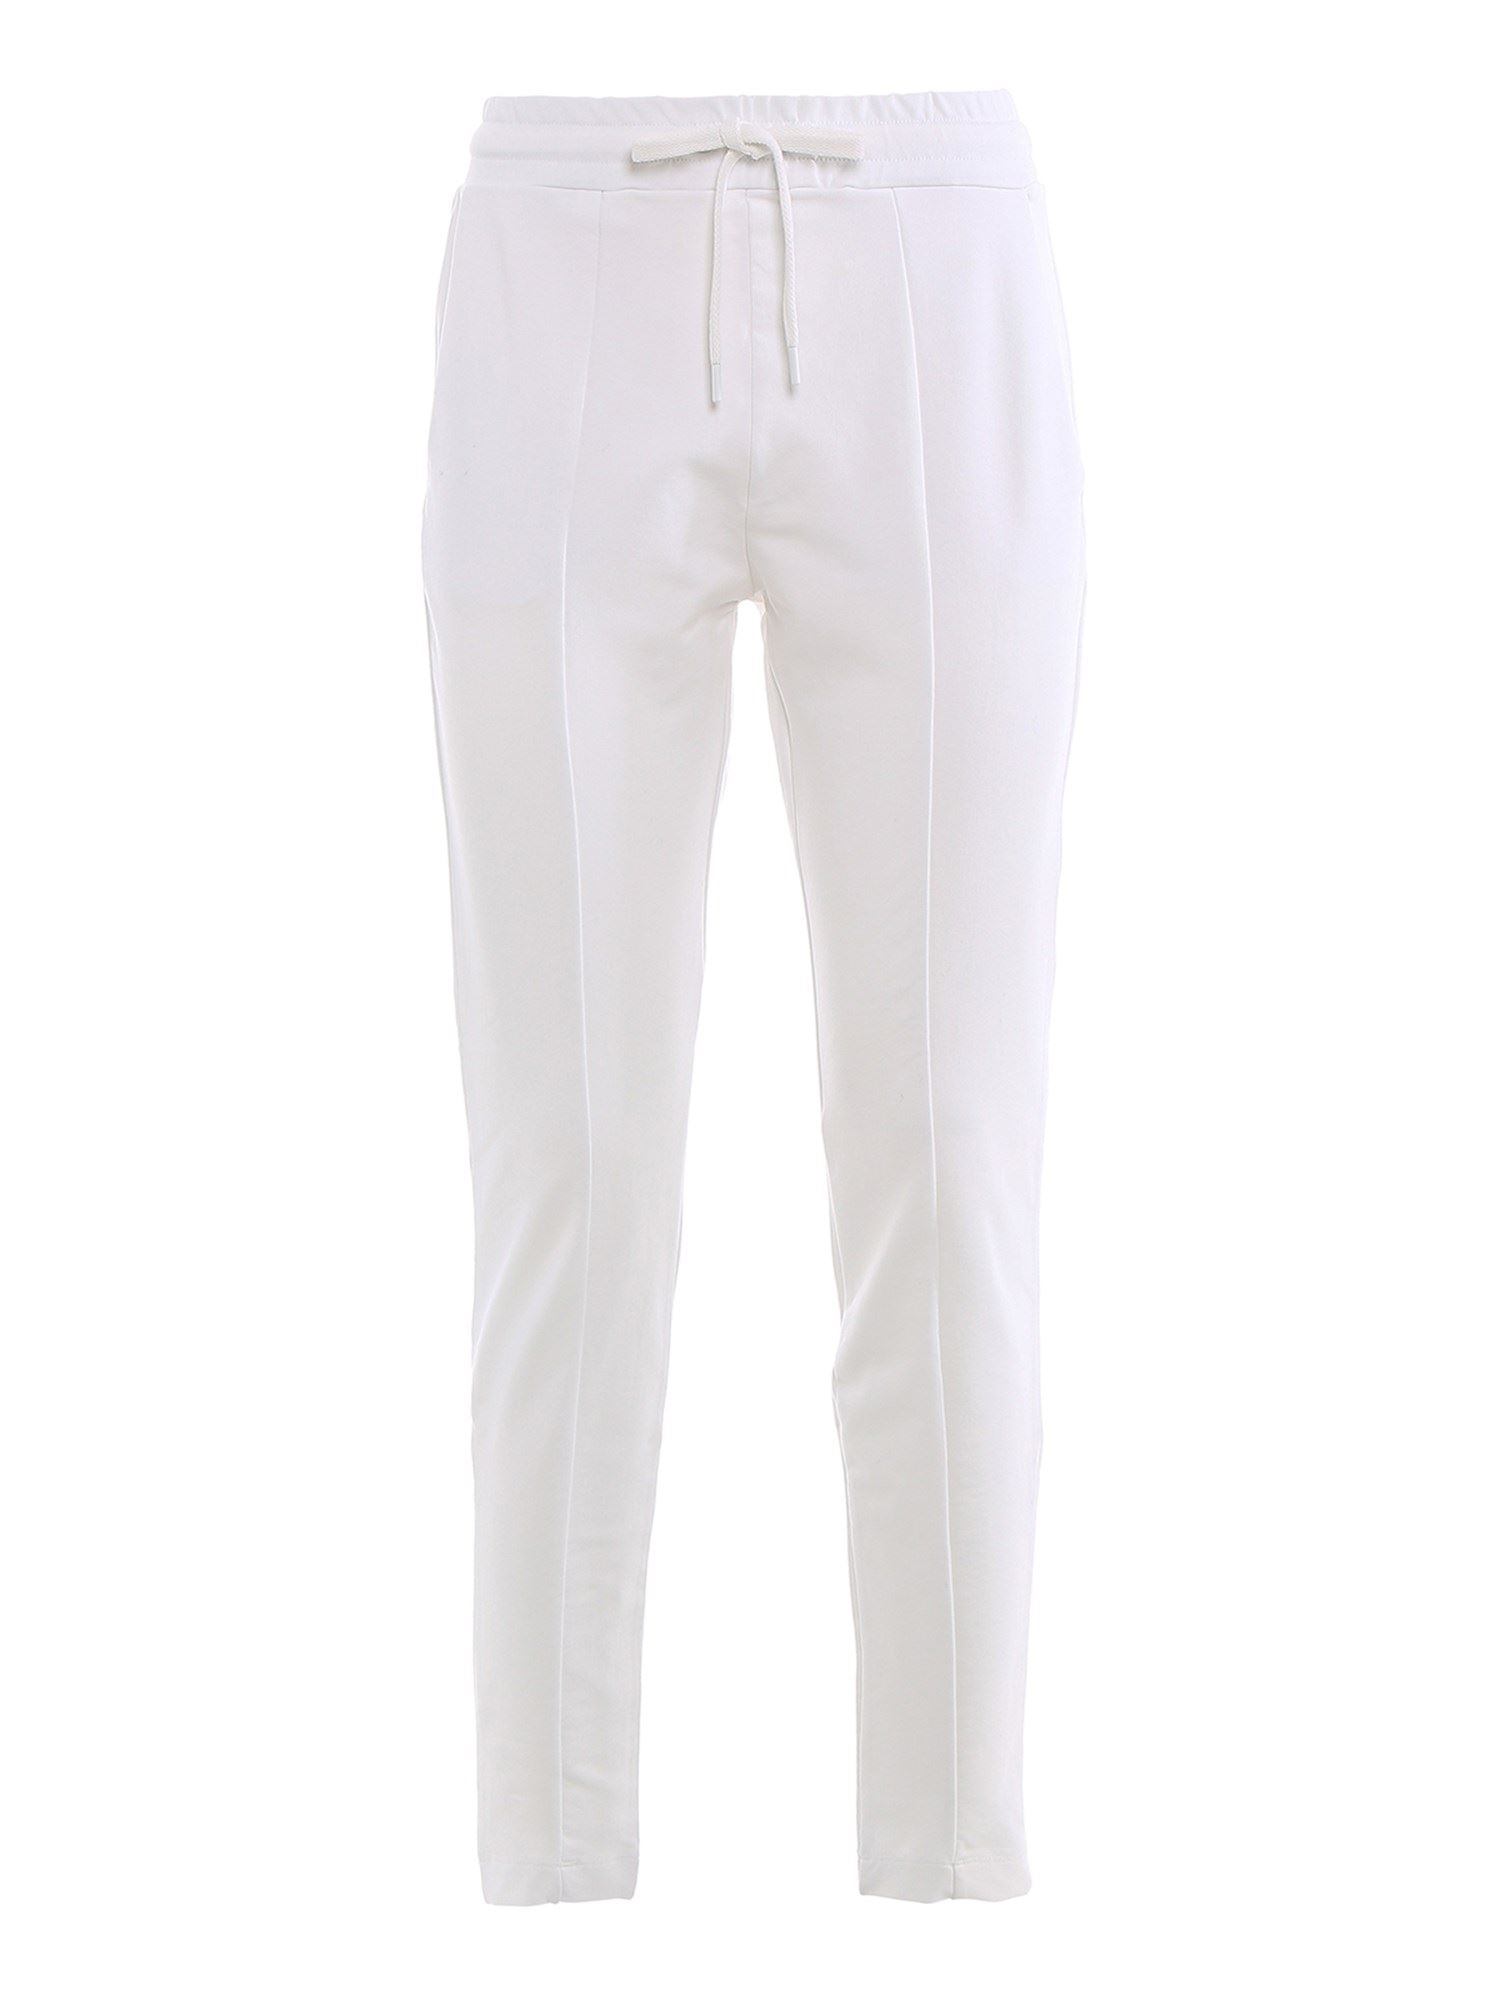 Moschino LOGO PRINT TRACKSUIT PANTS IN WHITE